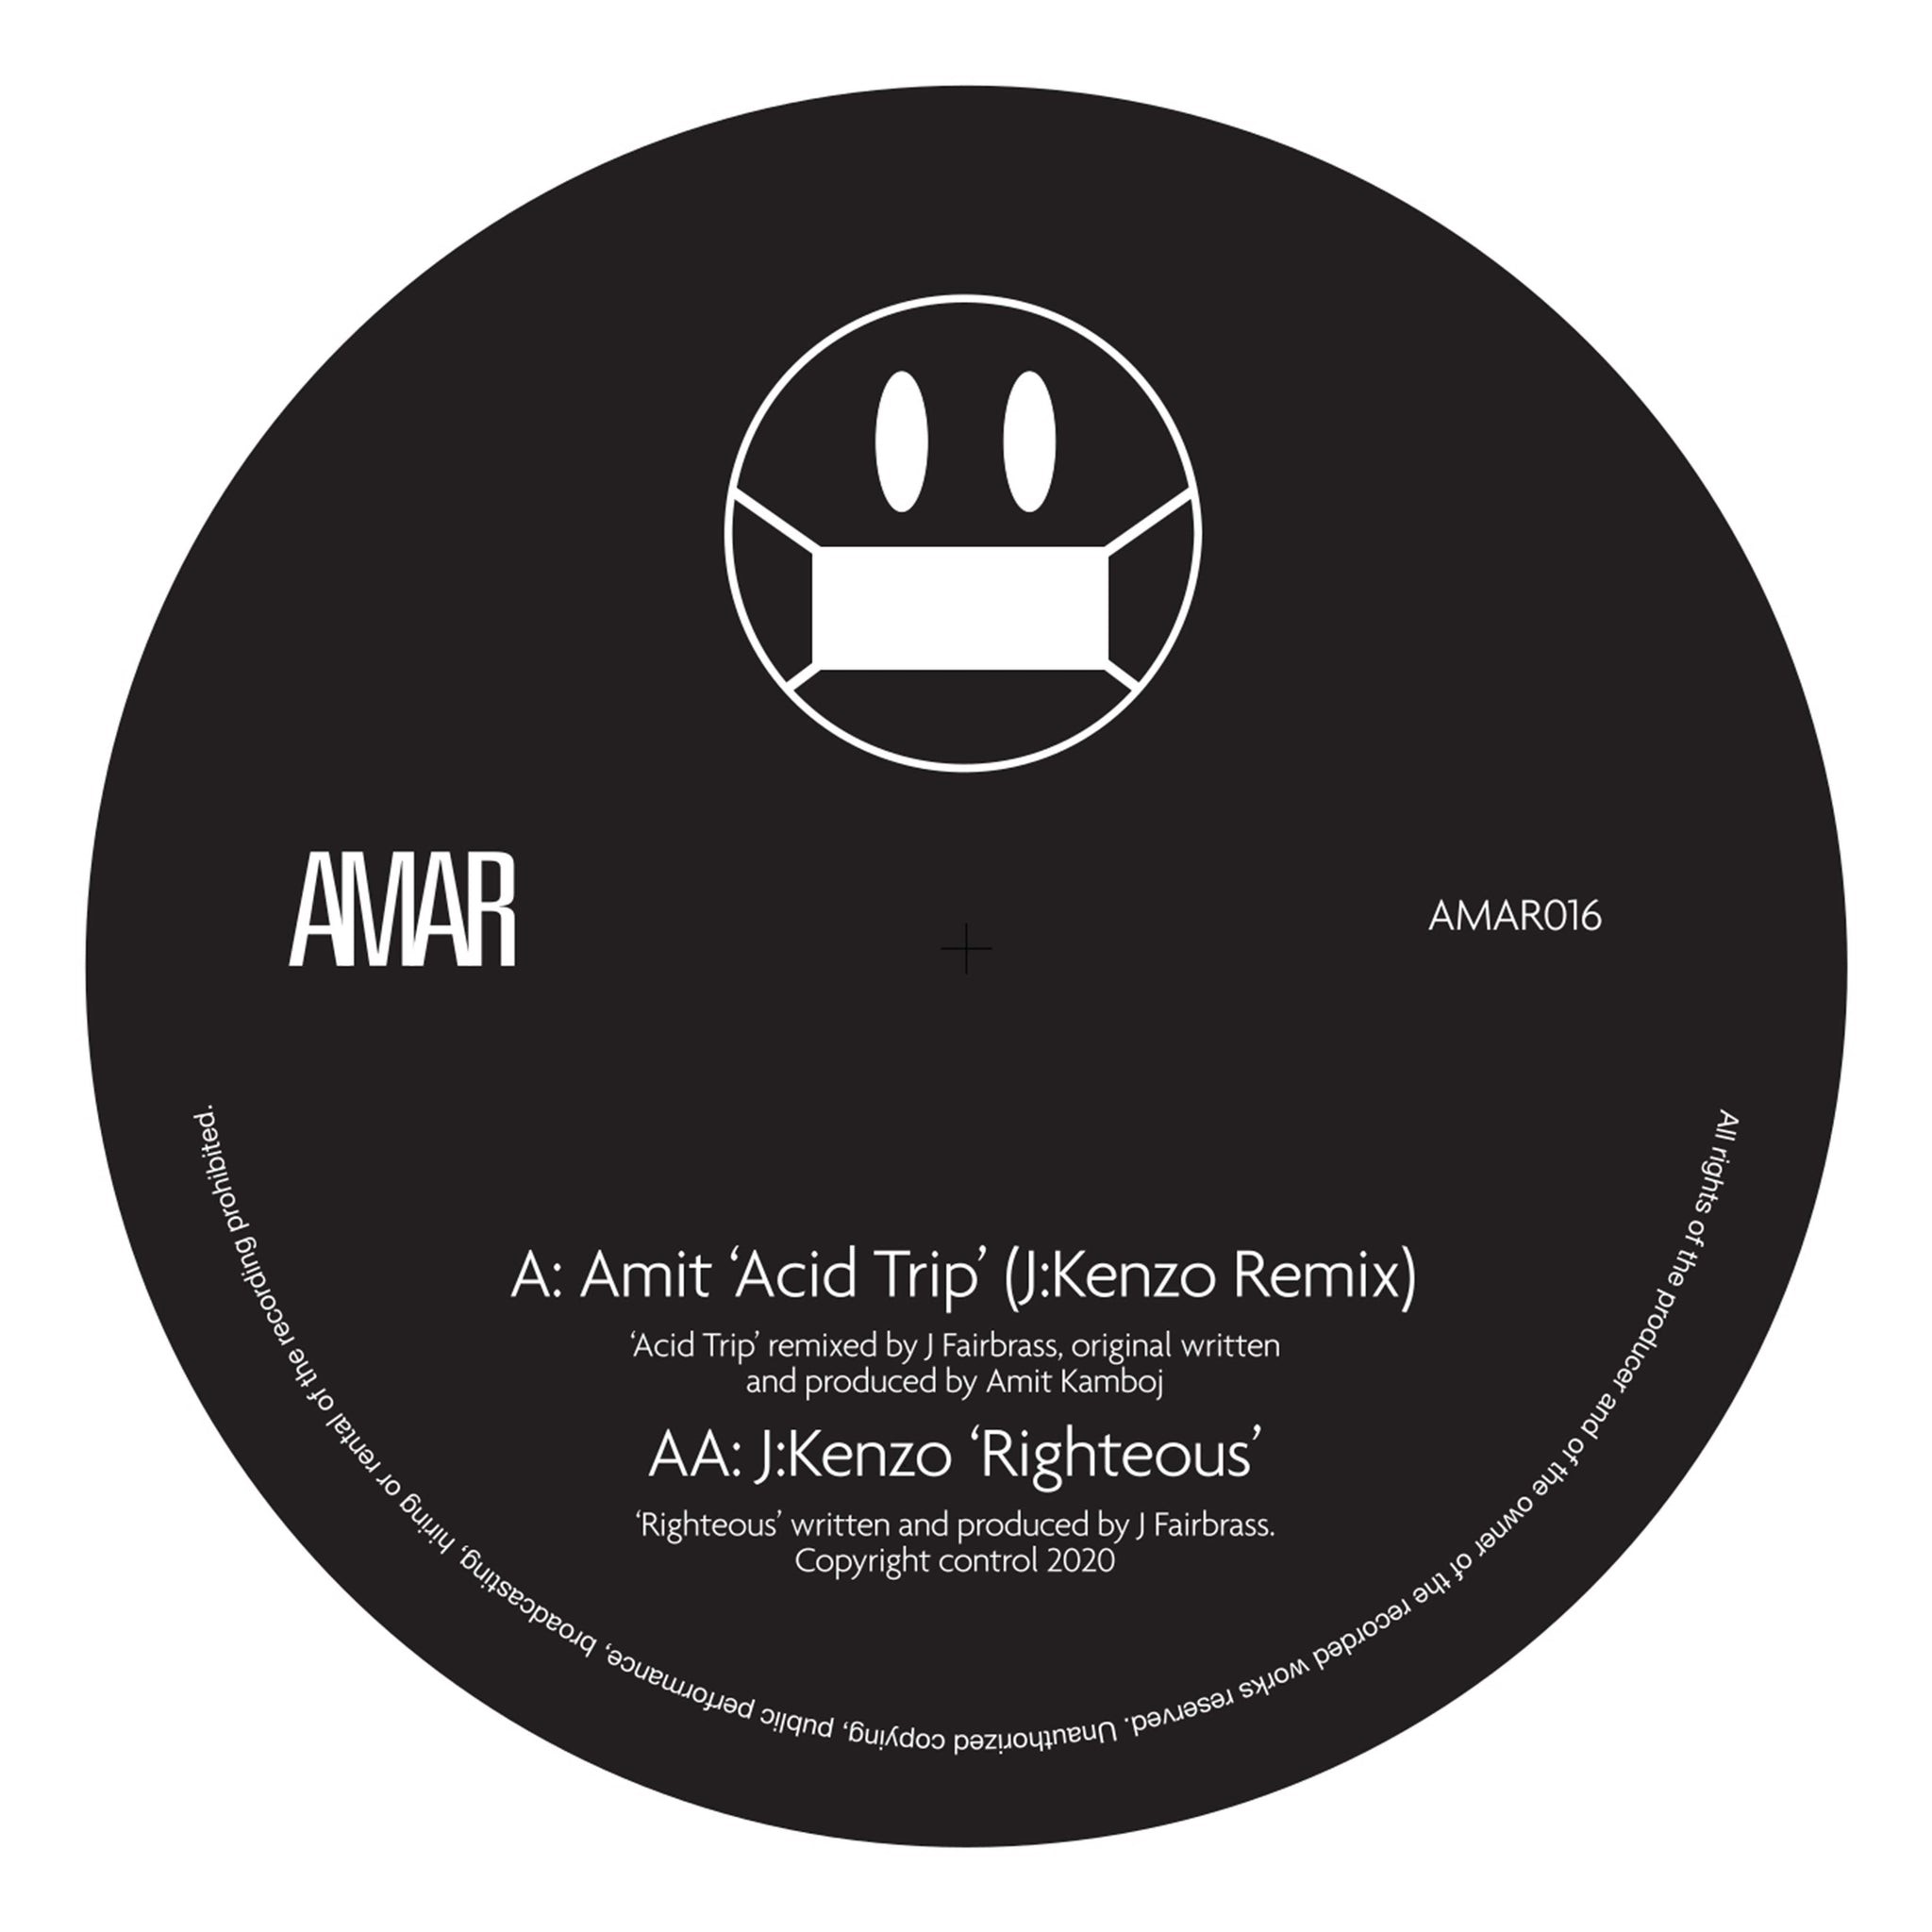 Amit 'Acid Trip (J:Kenzo Remix) / Righteous'